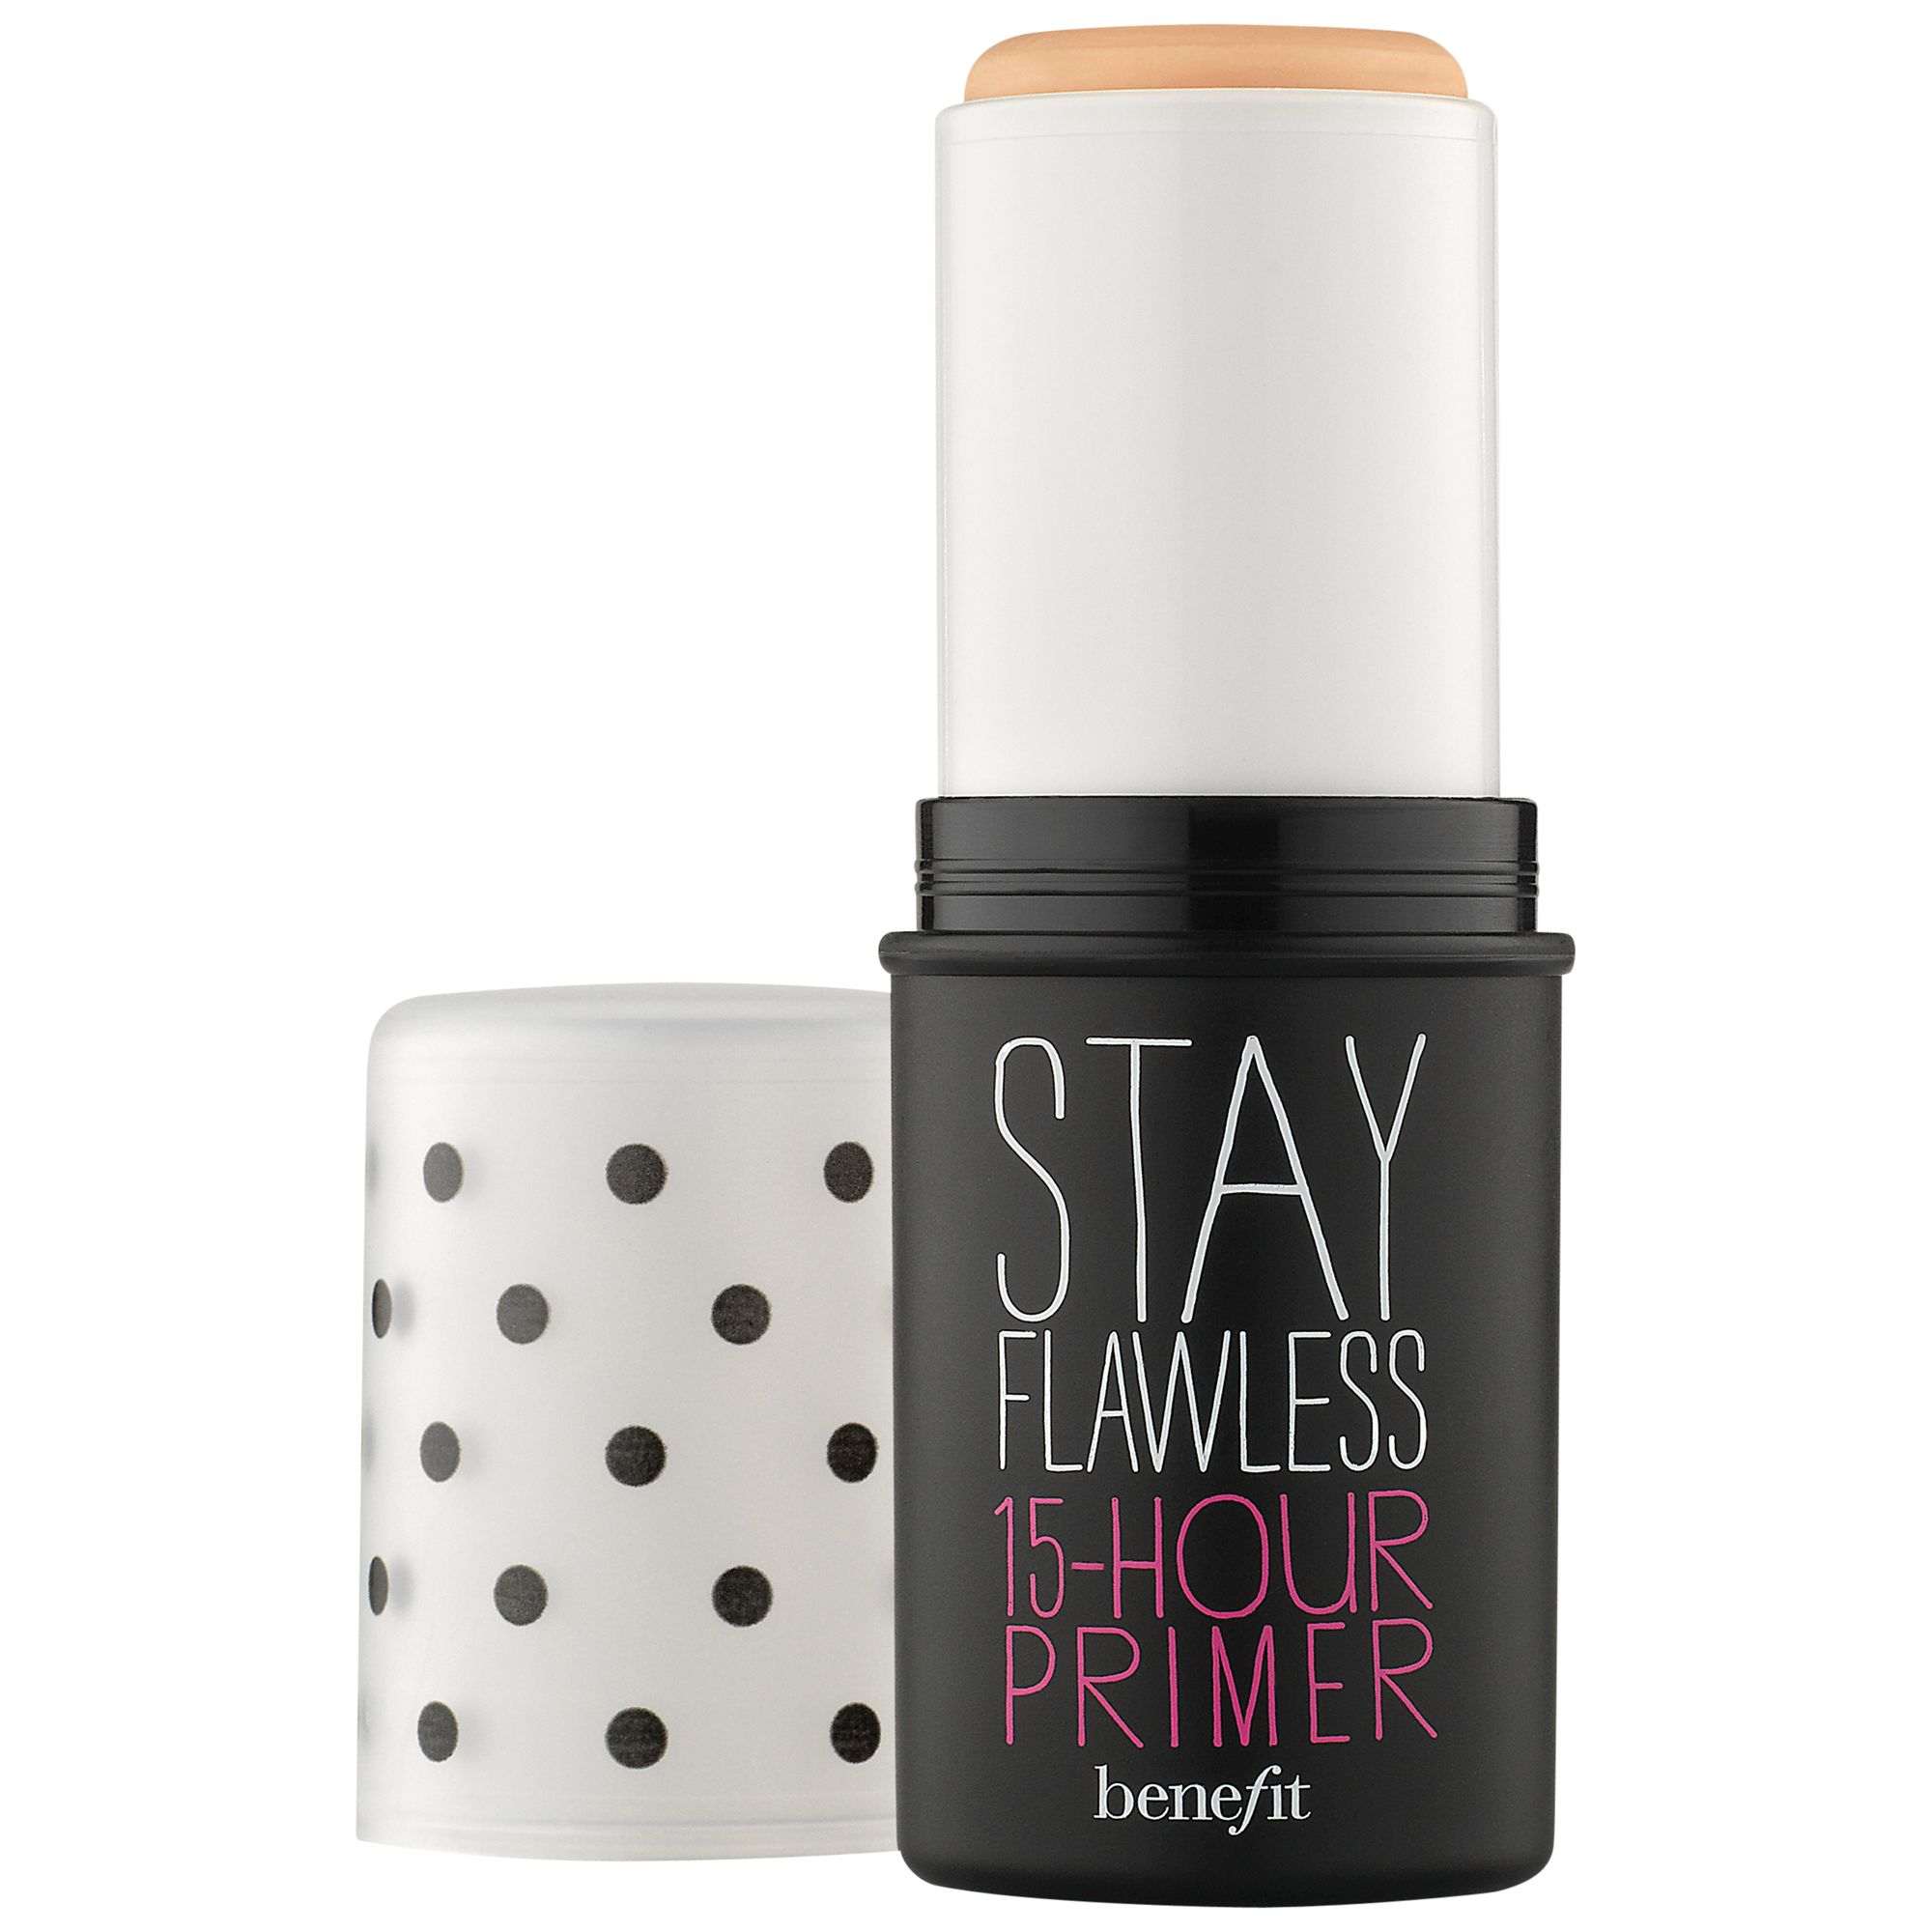 Benefit Benefit Stay Flawless 15 Hour Primer, 15.5g